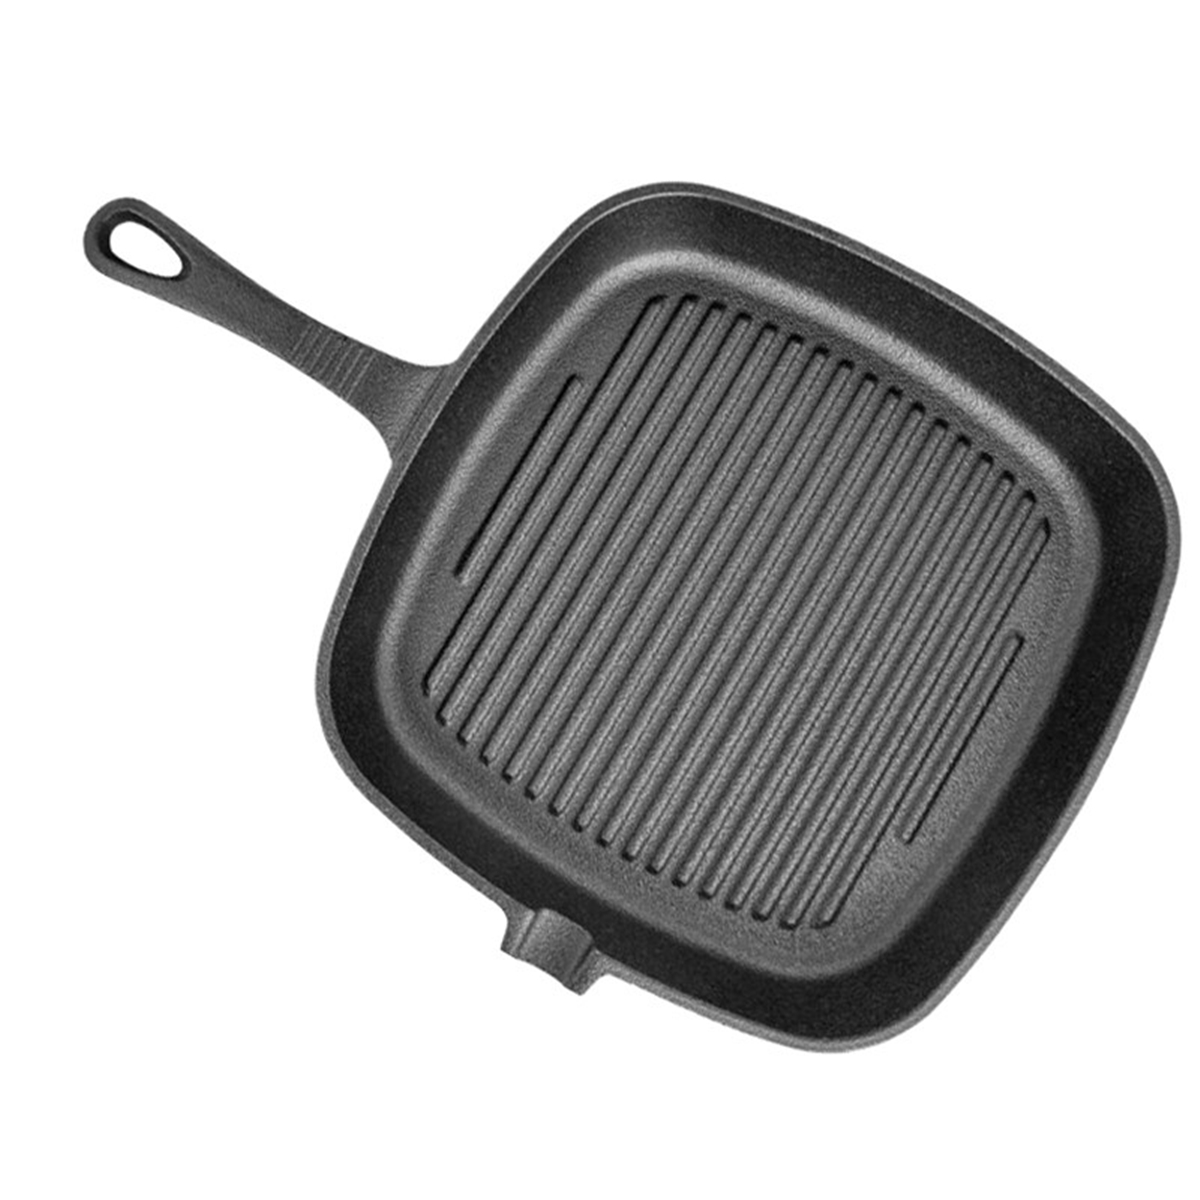 Grill Frying Pan Non Stick Cast Iron Grill Frying Pan Griddle Bbq Kitchen Cooking Baking Tool Non Stick Pan